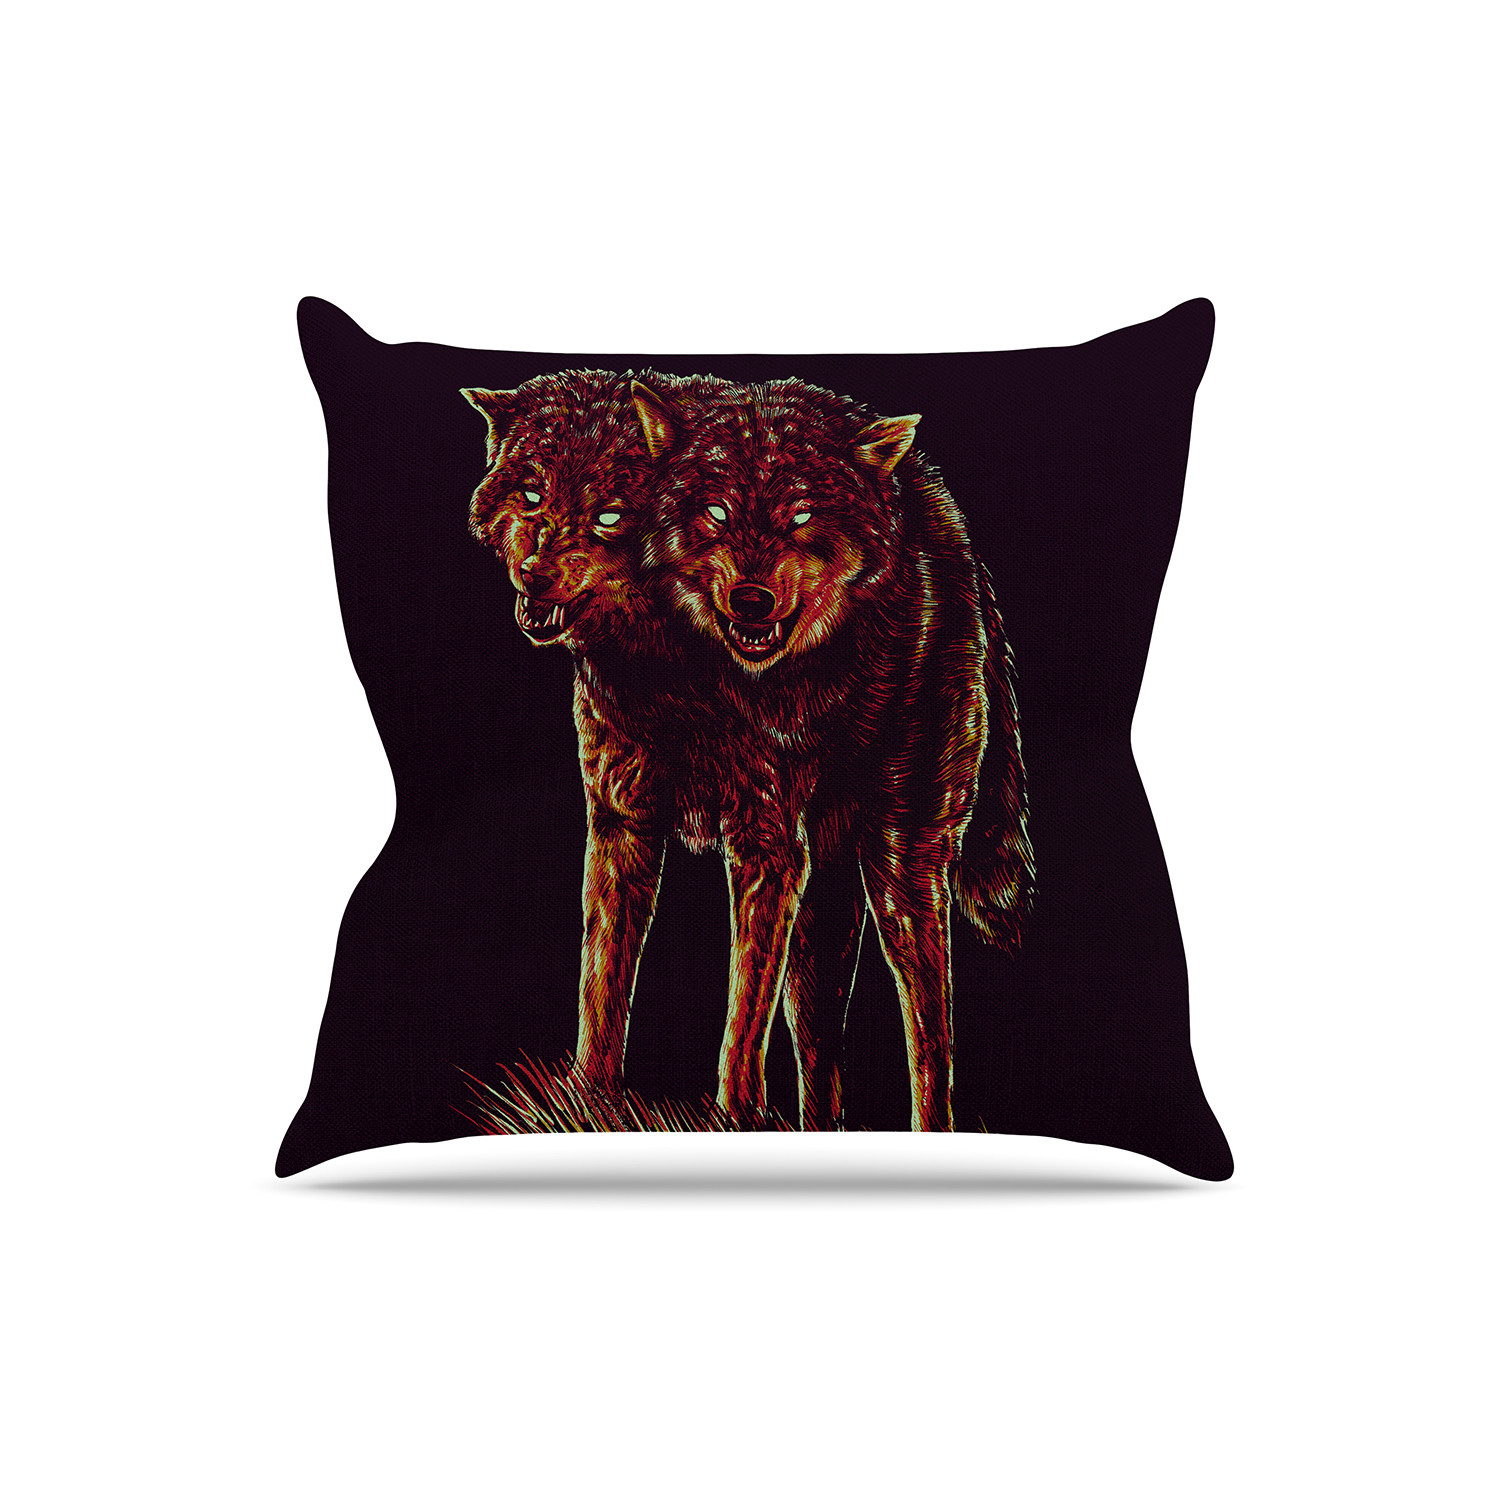 2head Throw Pillow (16